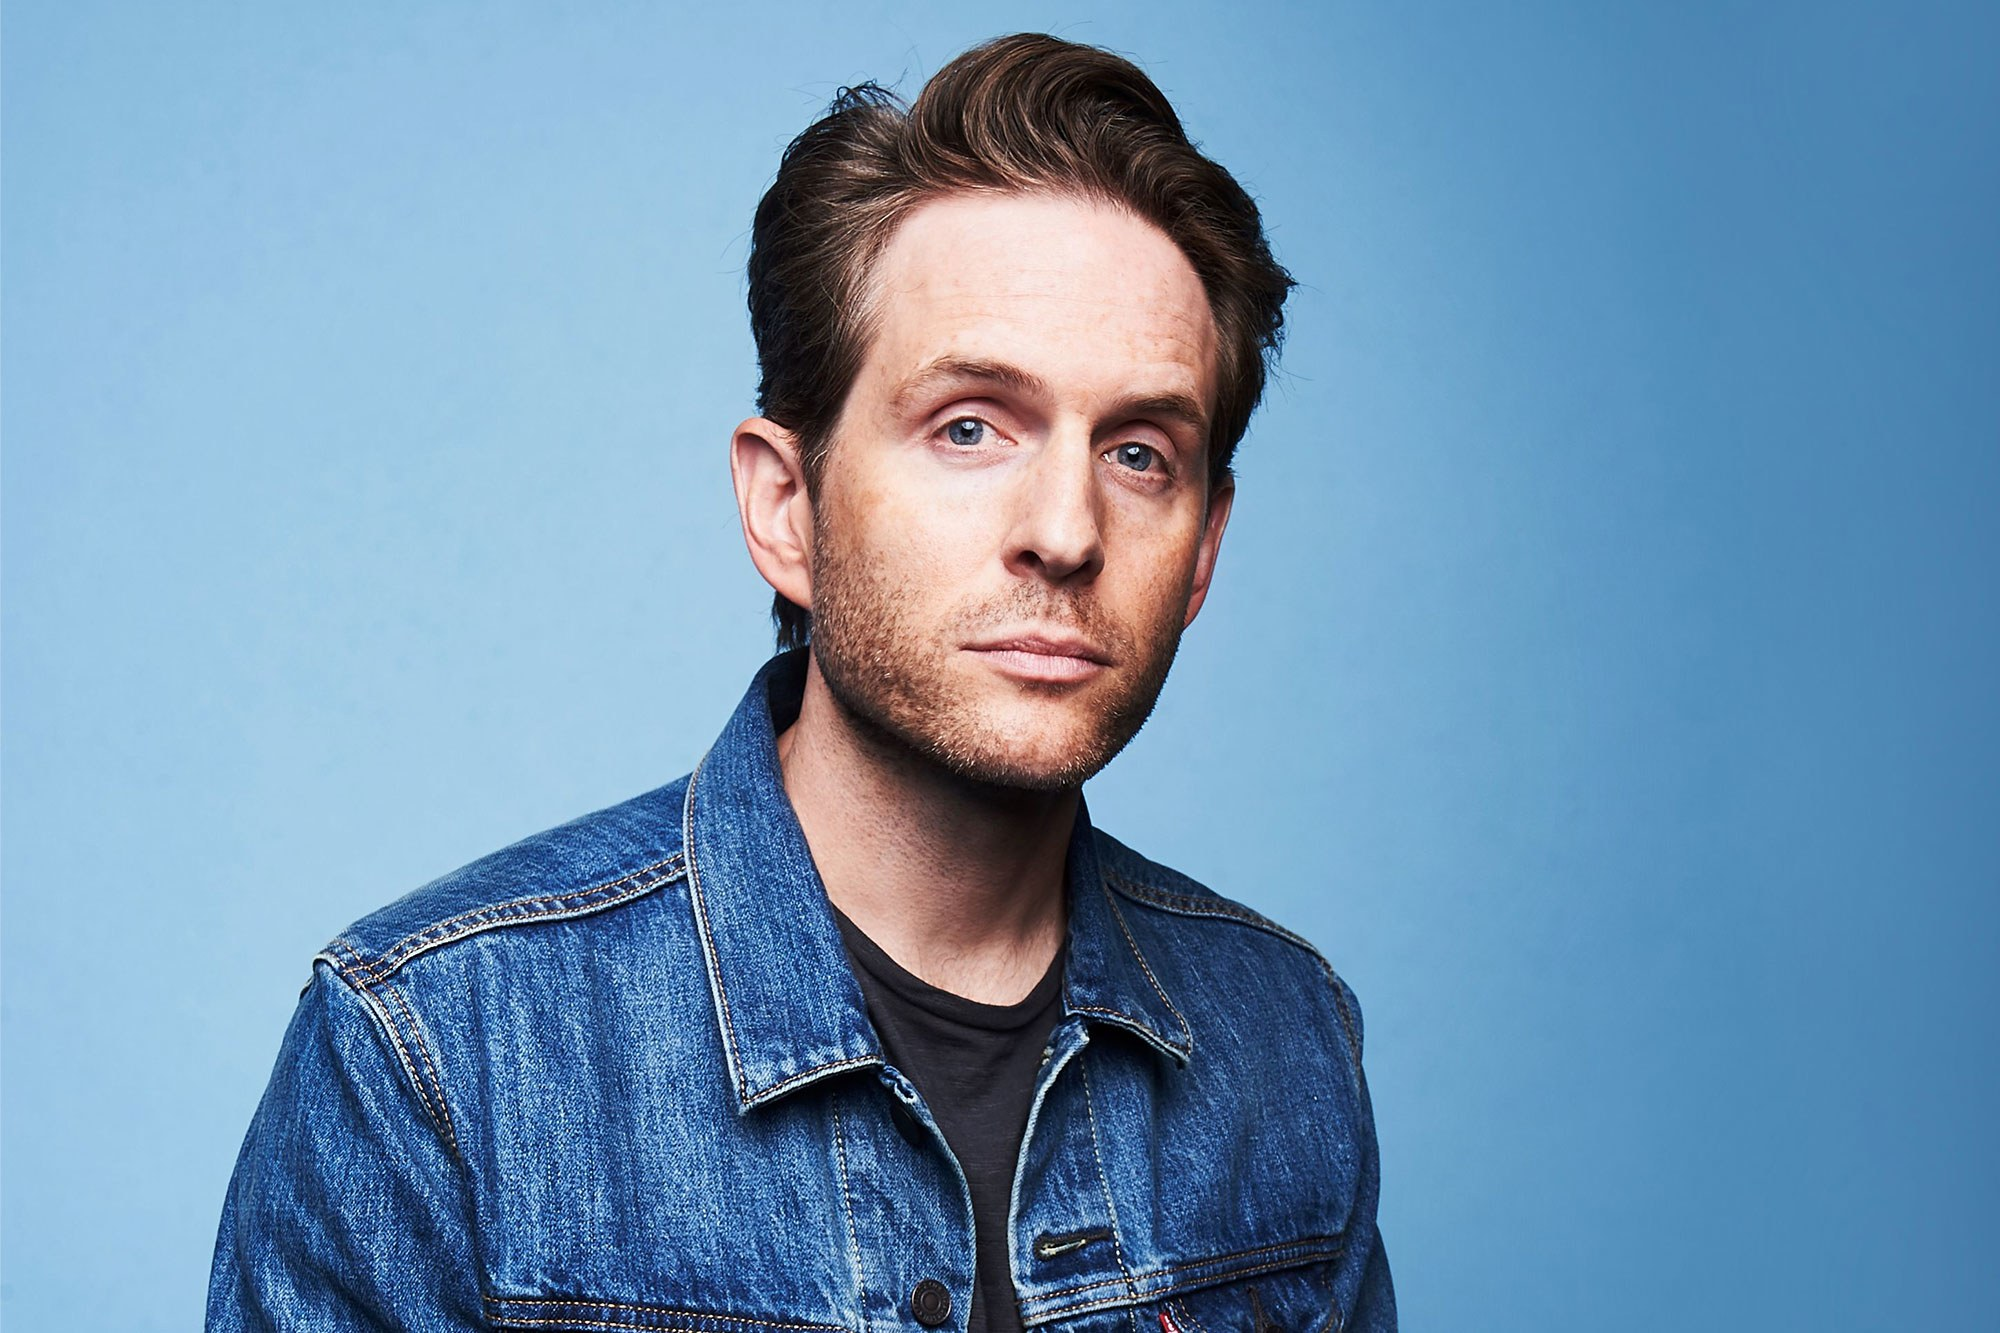 t-Glenn-Howerton-AP-Bio-Interview.jpg